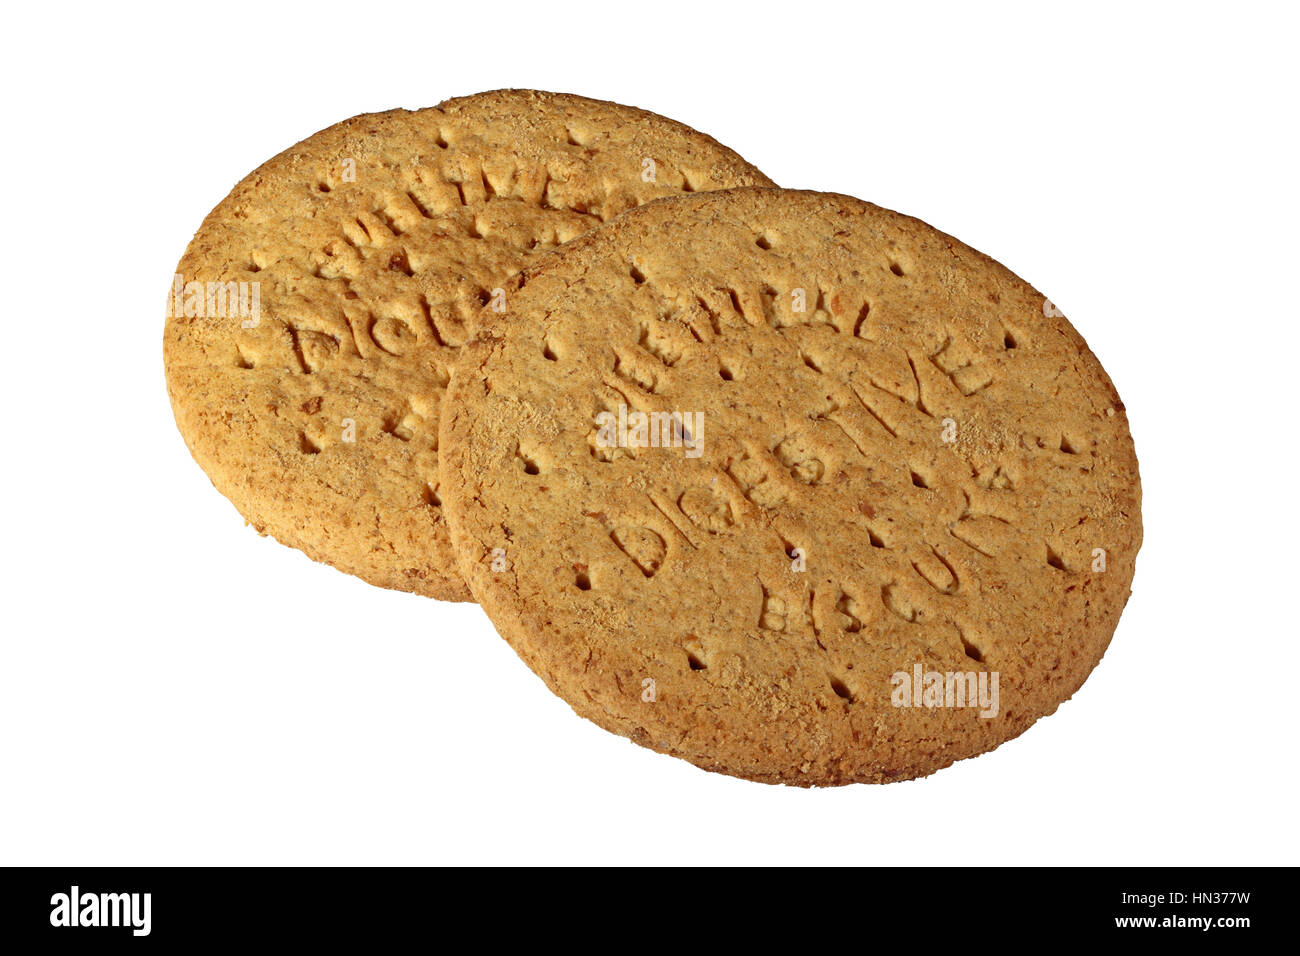 Two plain sweetmeal Digestive biscuits isolated on a white background - Stock Image